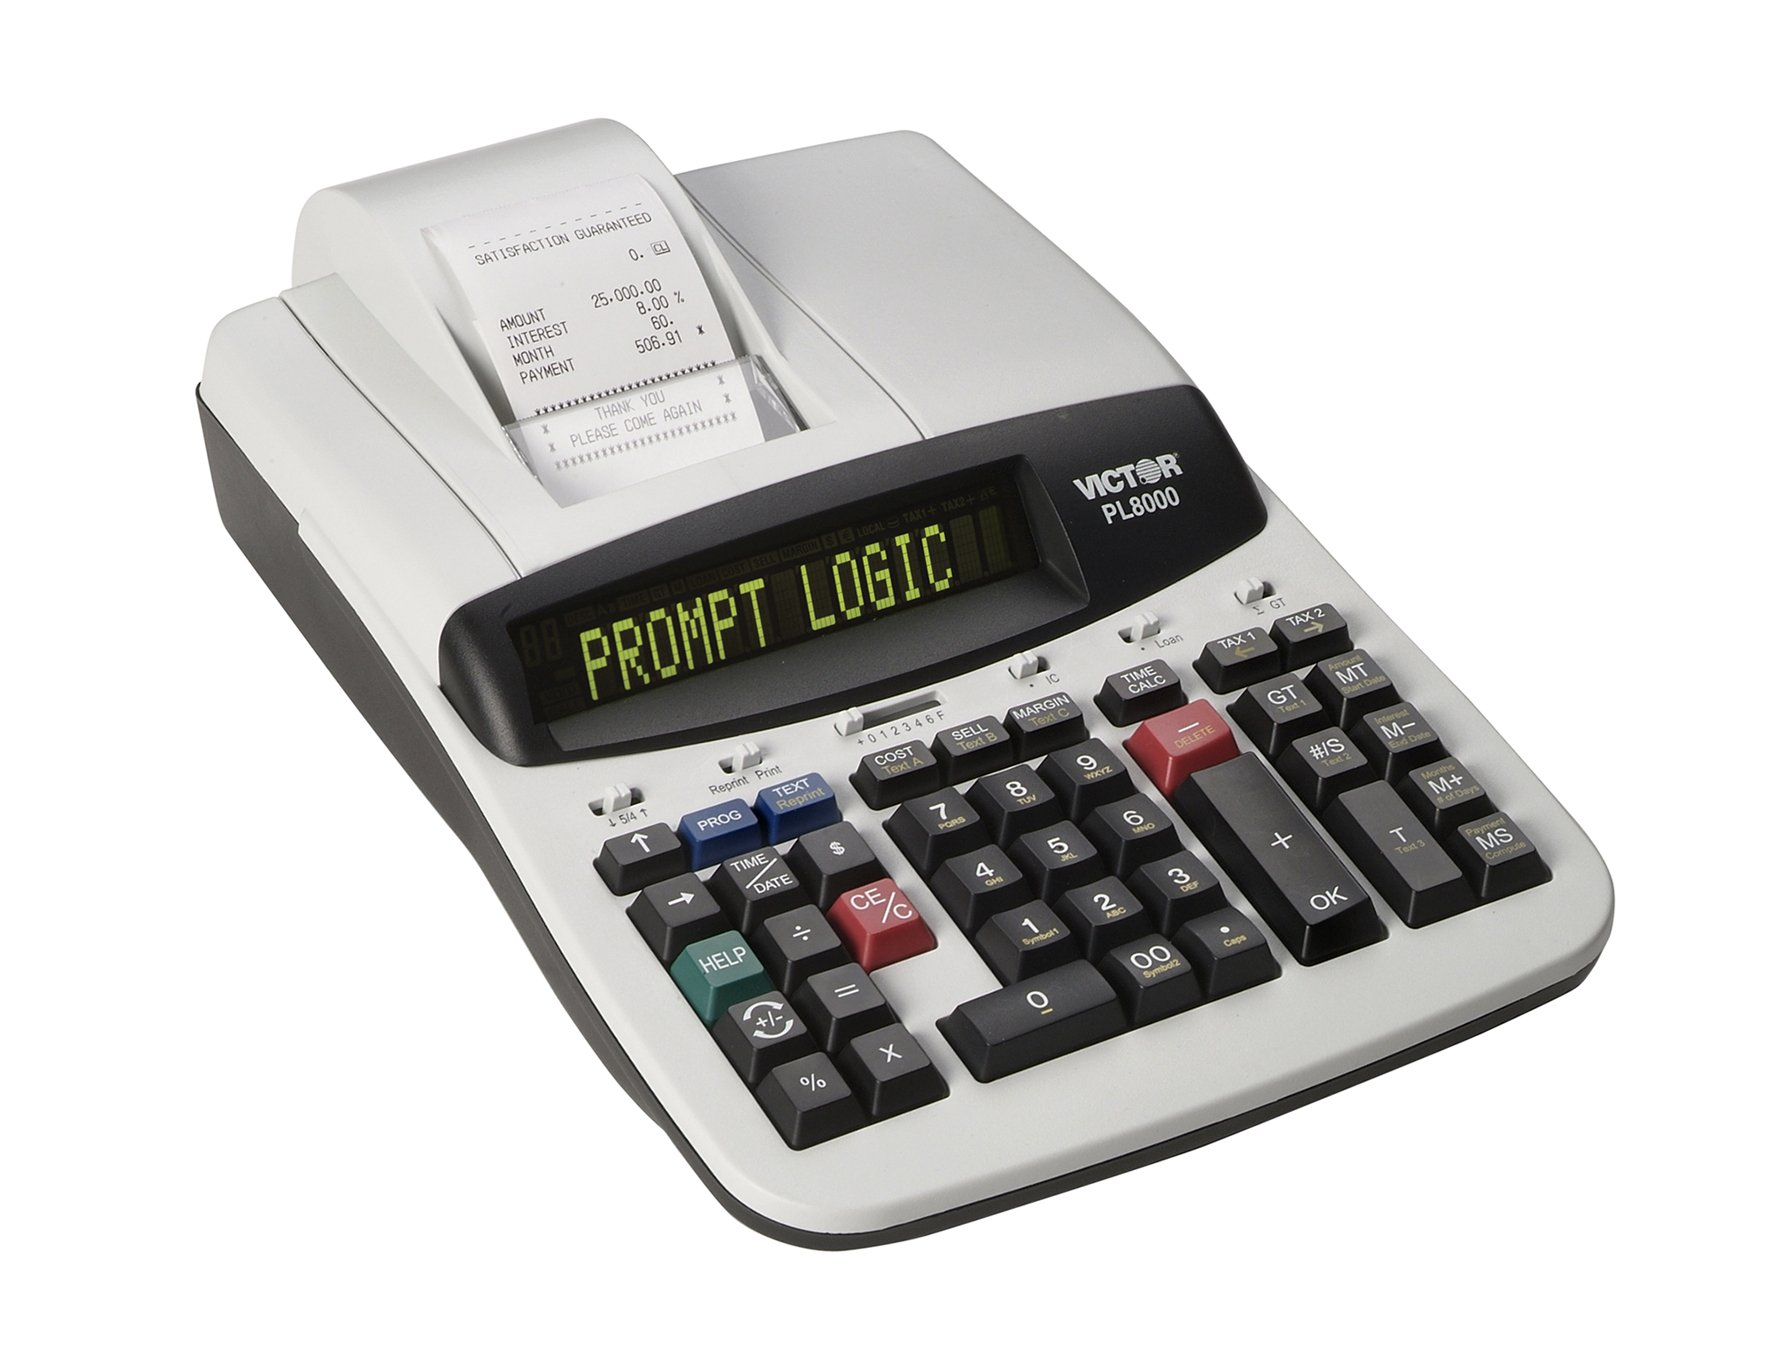 Victor Technology PL8000 Thermal Printing Calculator, Prompt Logic, Help Key, 8.0 Lines Per Second by Victor